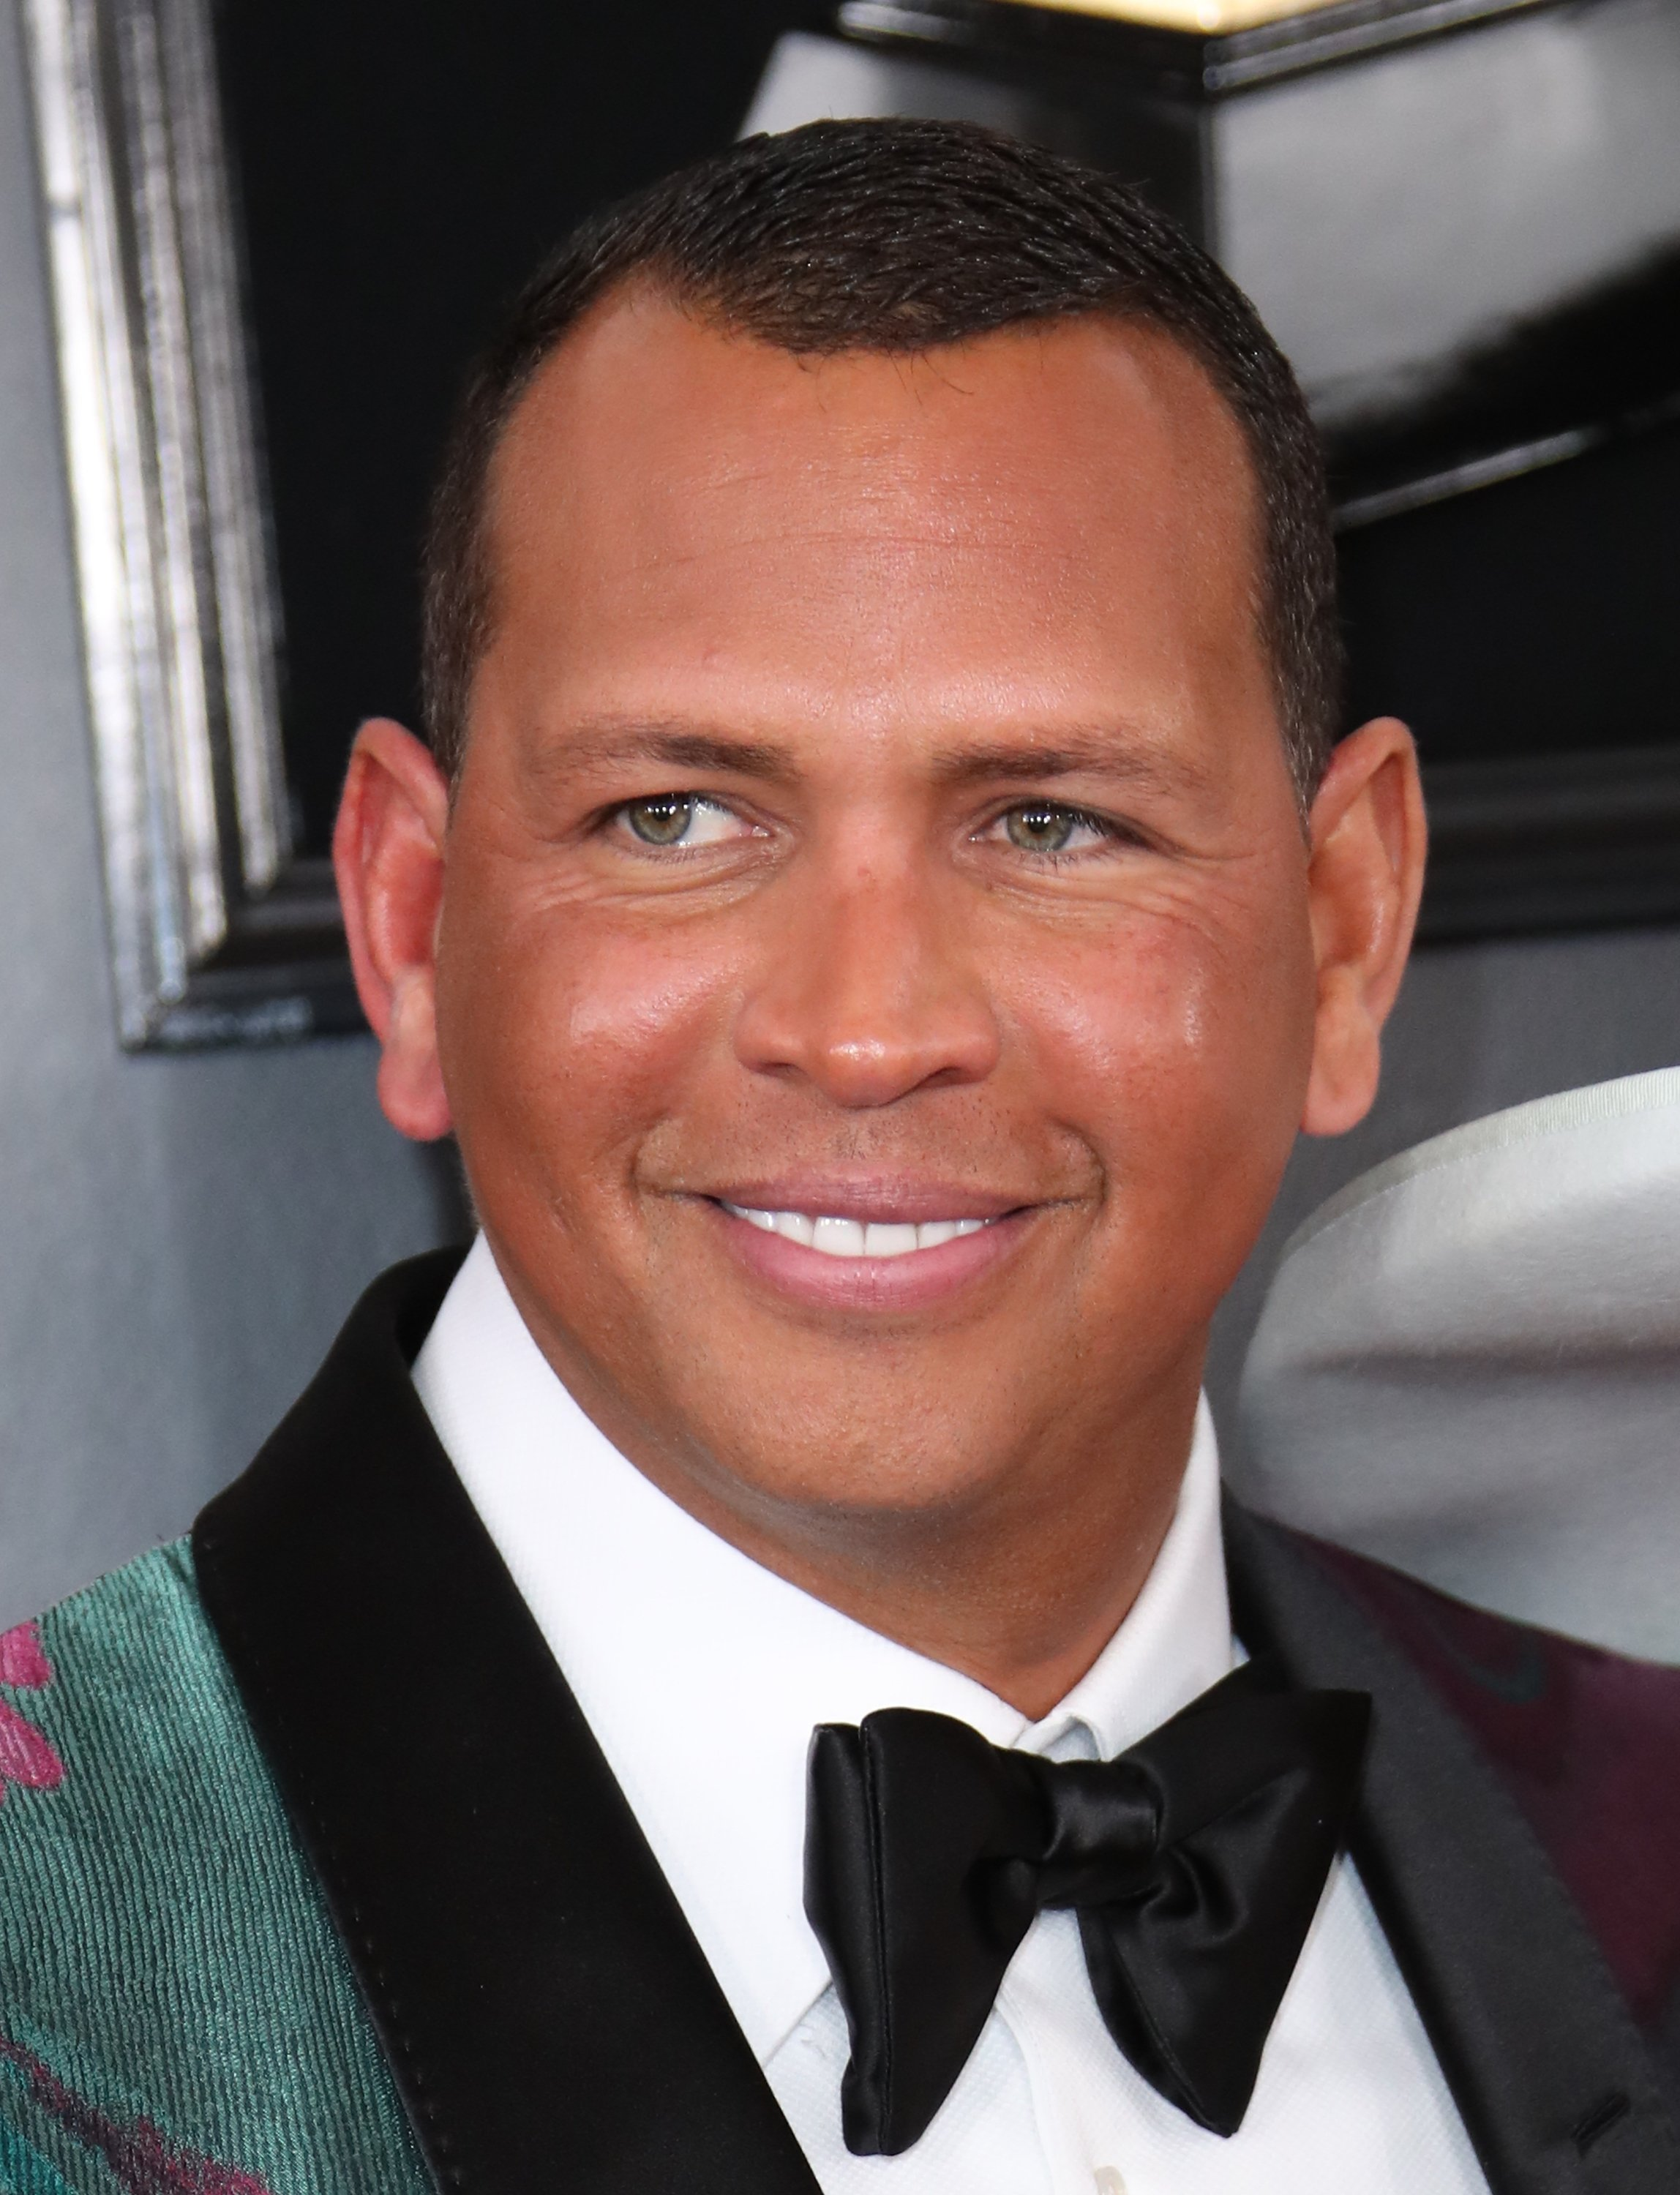 Alex Rodriguez attends the 61st Annual GRAMMY Awards at Staples Center on February 10, 2019, in Los Angeles, California. | Source: Getty Images.